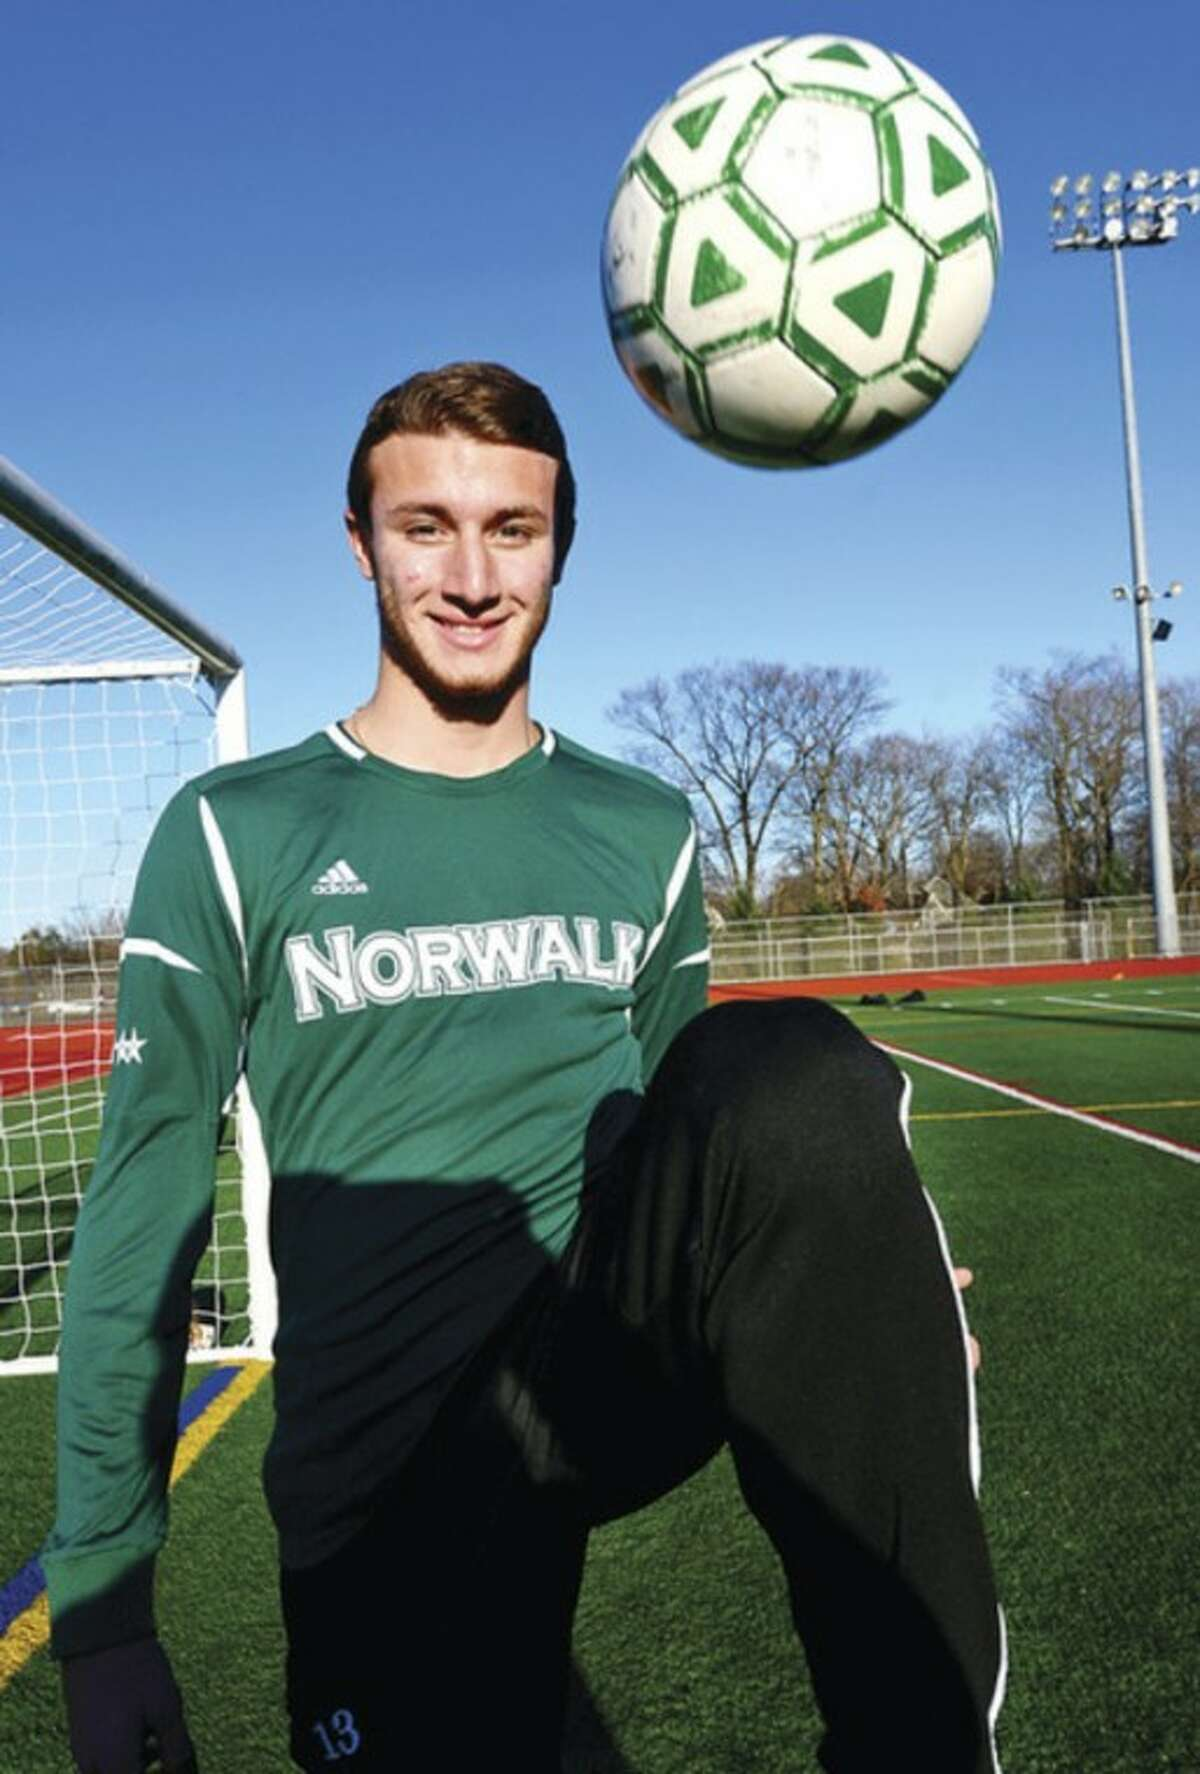 Hour photo/Erik Trautmann Norwalk senior captain Andrew Melitsanopoulos was the leader of the defensive unit that played a key role in the Bears' championship season. The backliner stepped to the front when it was time to pick an All-Area boys soccer MVP.